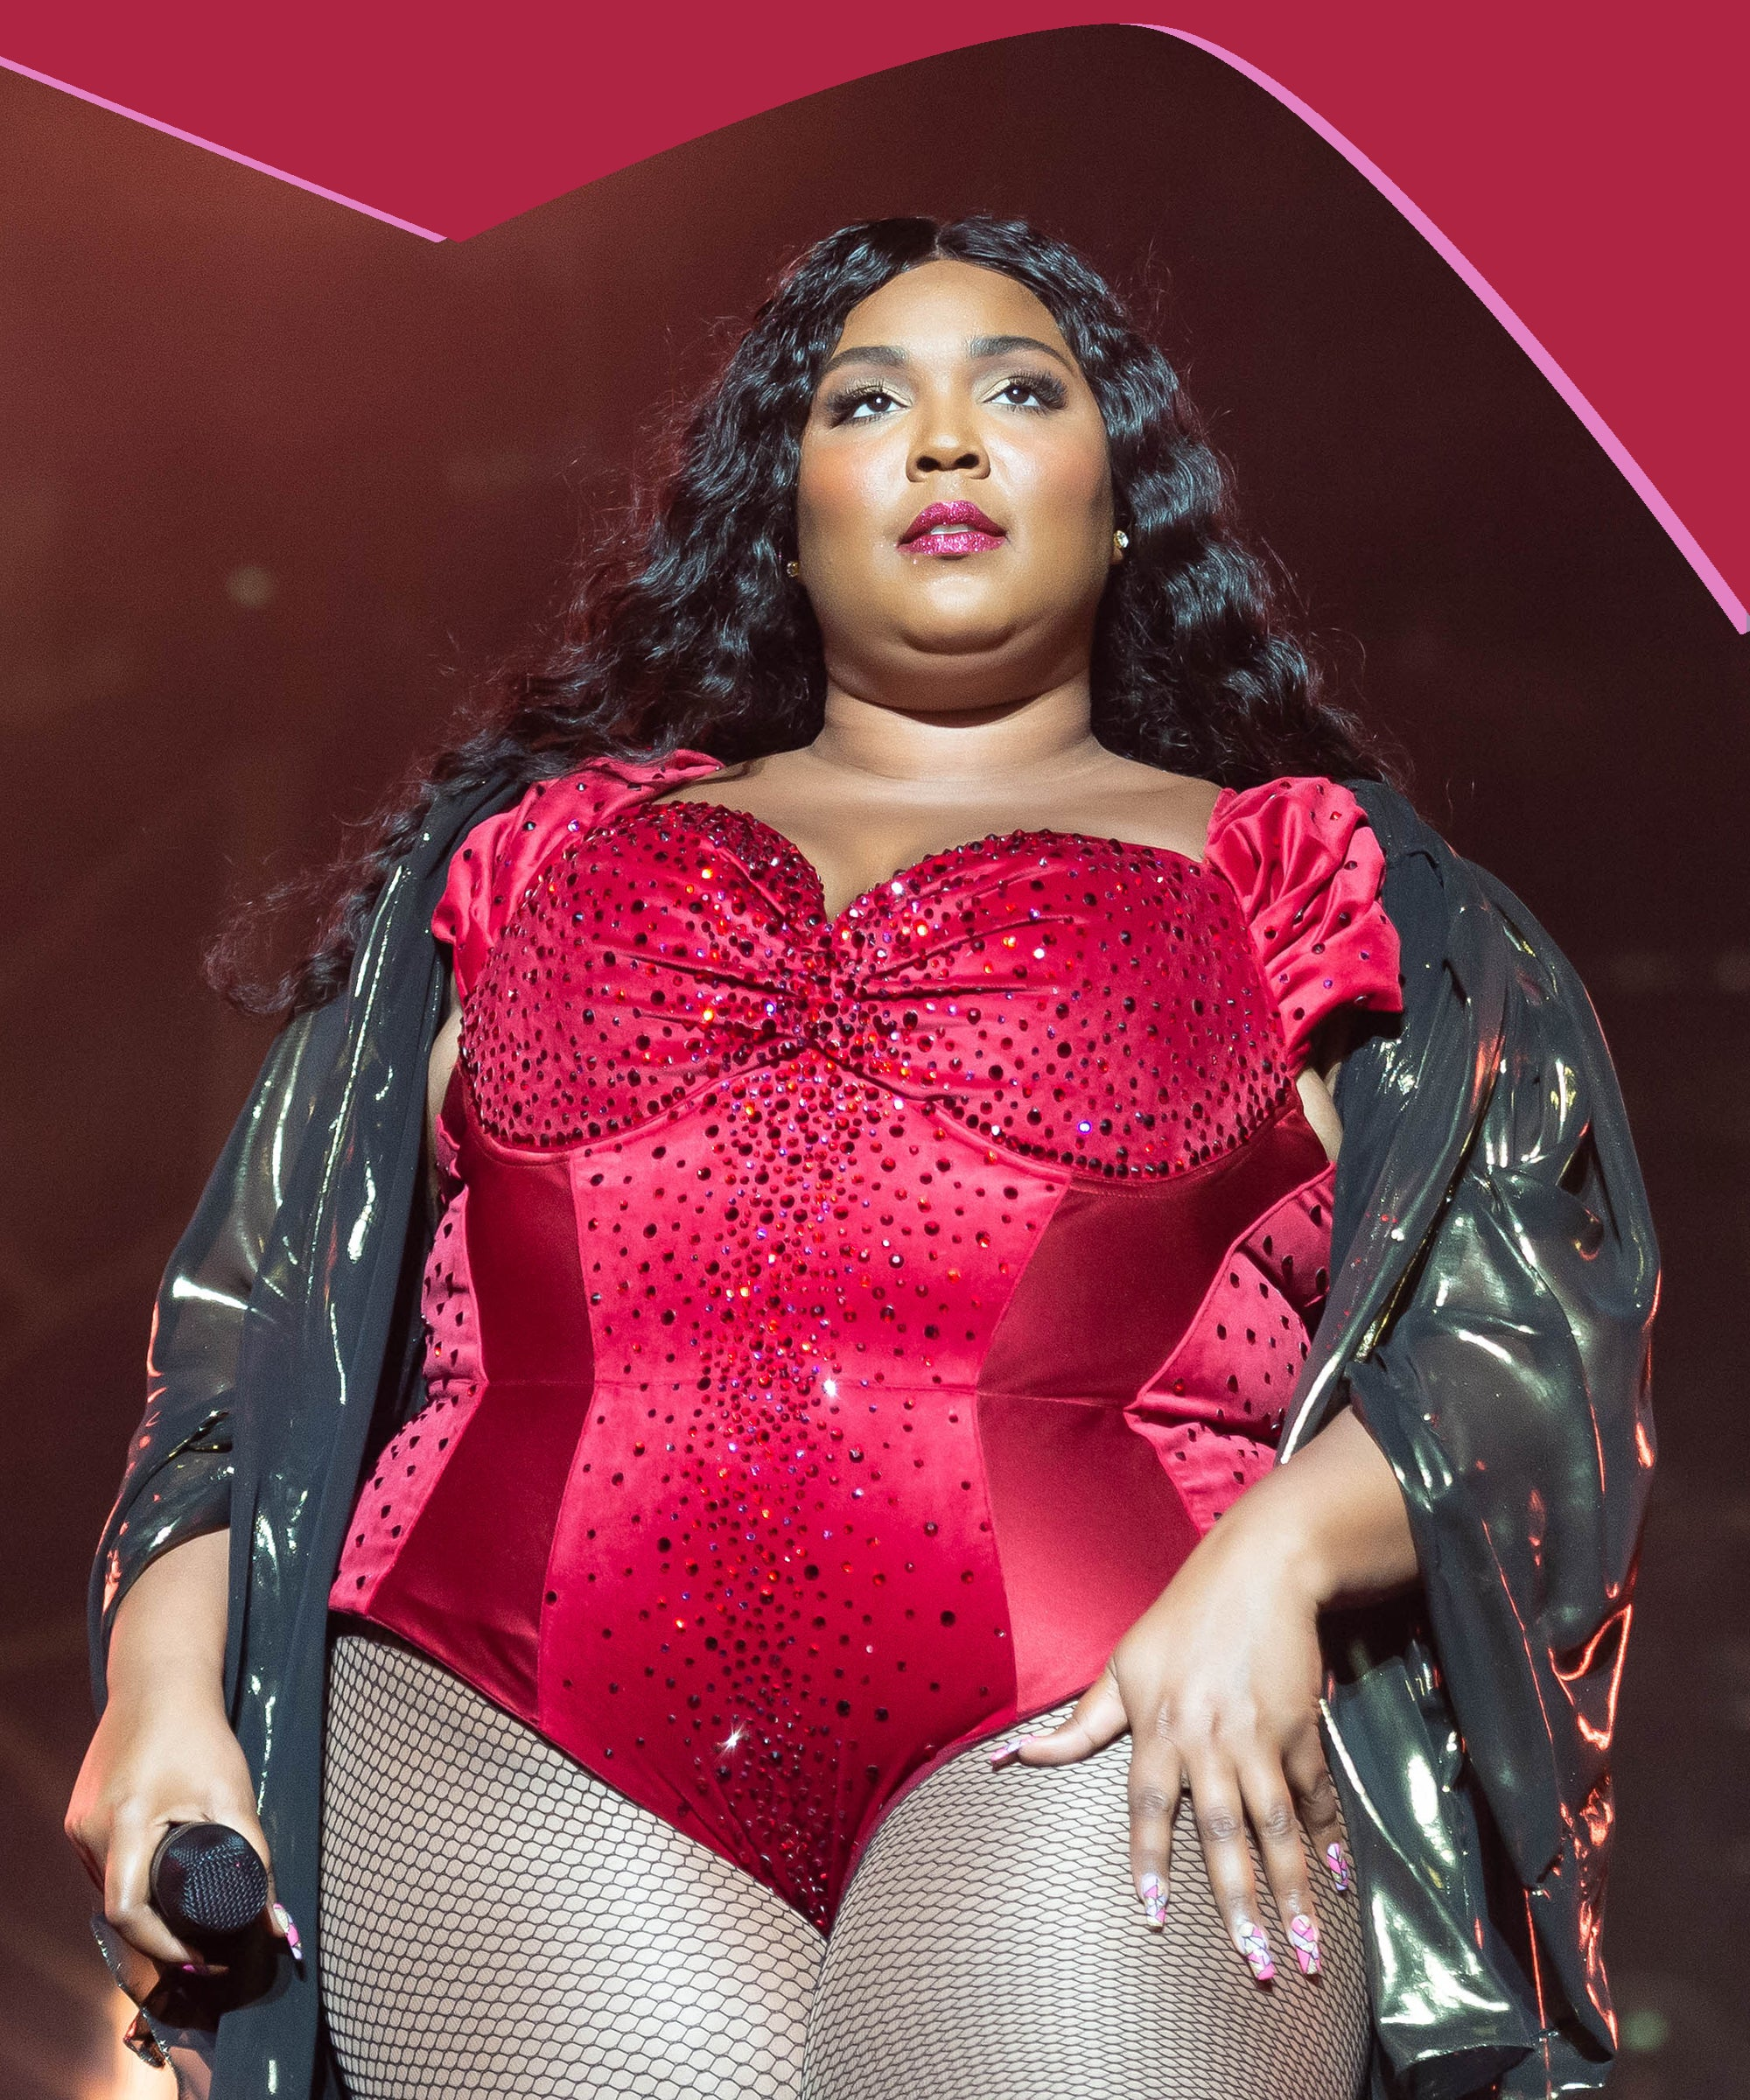 Everything You Need For A Lizzo Halloween Costume (Minus The DNA Test)